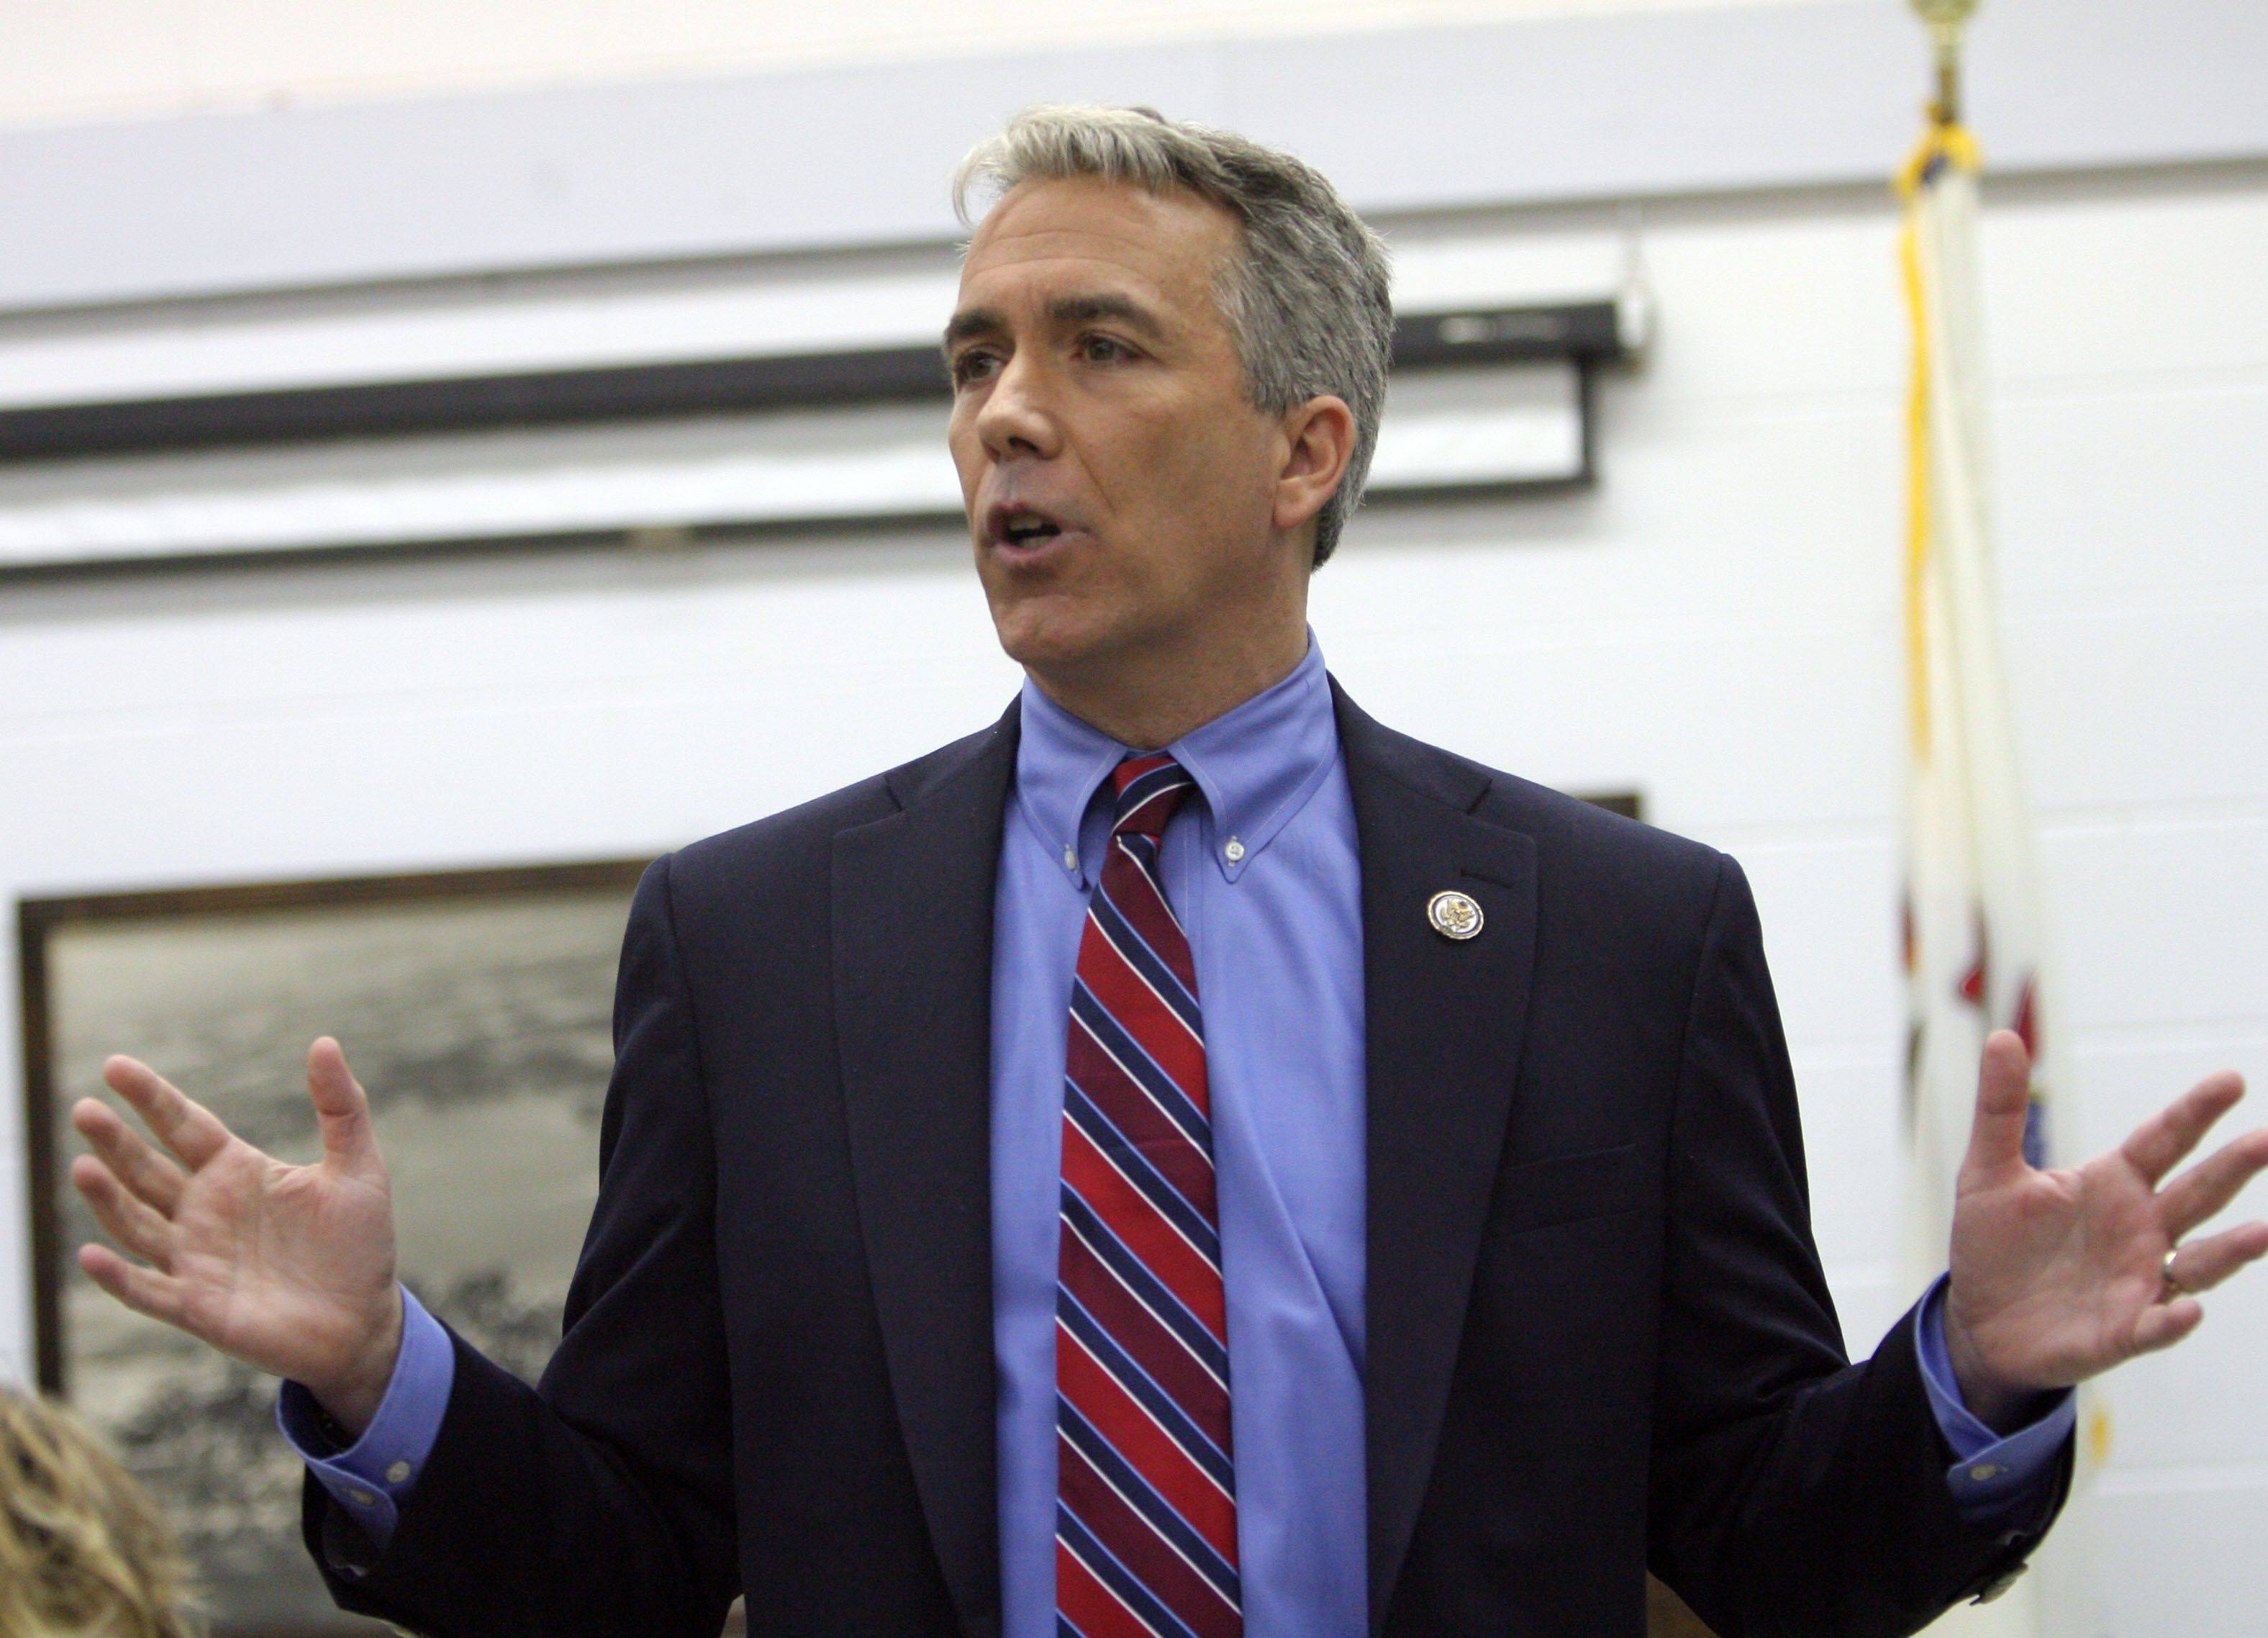 U.S. Rep. Joe Walsh held a town-hall meeting at the Wauconda Township Hall Wednesday night. Part of the discussion dealt with the recent shootings in Tuscon.